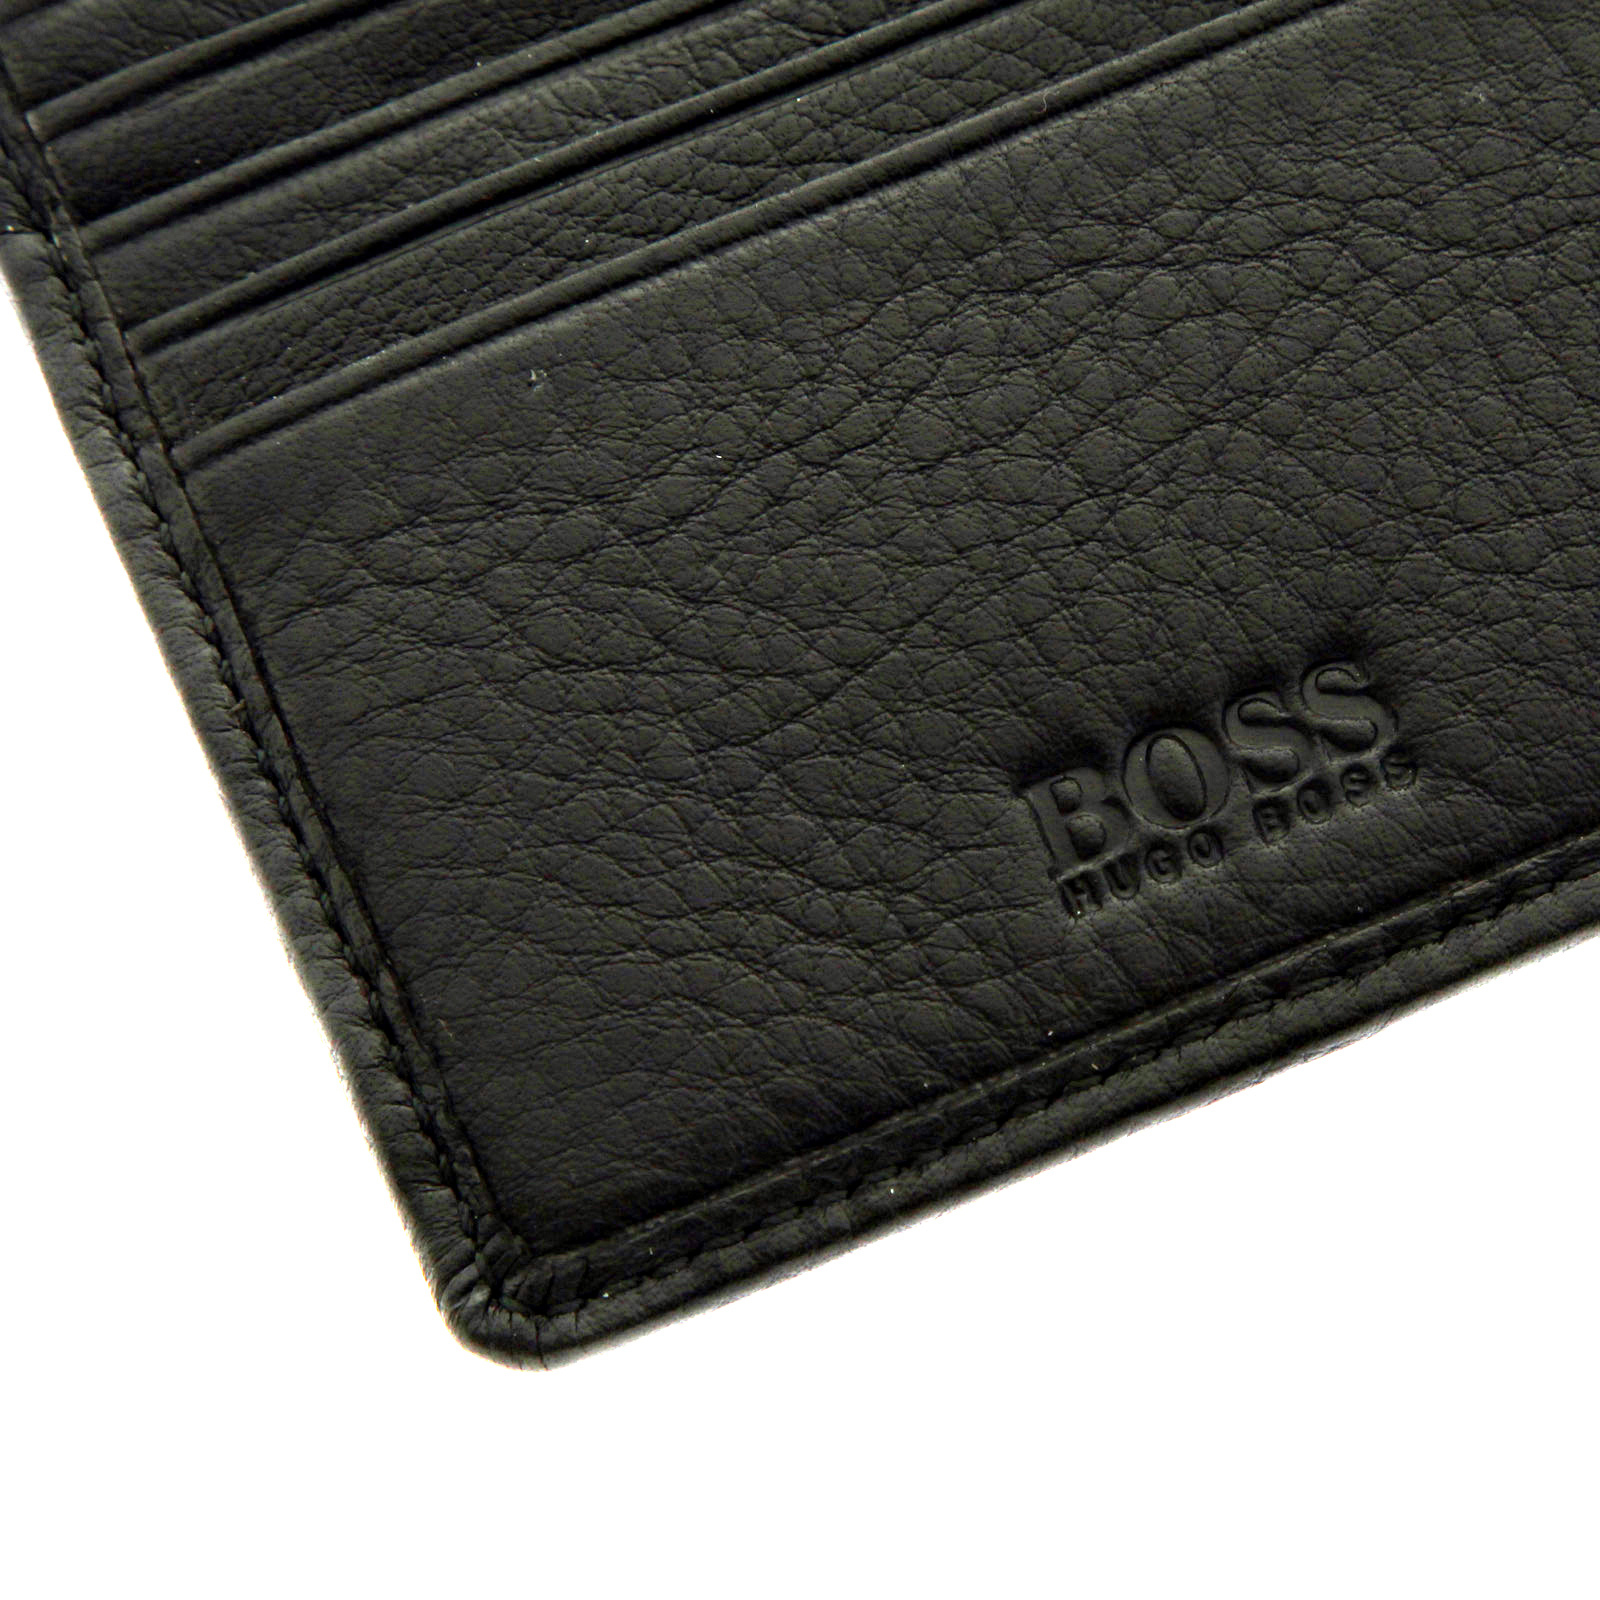 Hugo Boss Wallet Ghiotto boxed wallet and key holder gift set ...